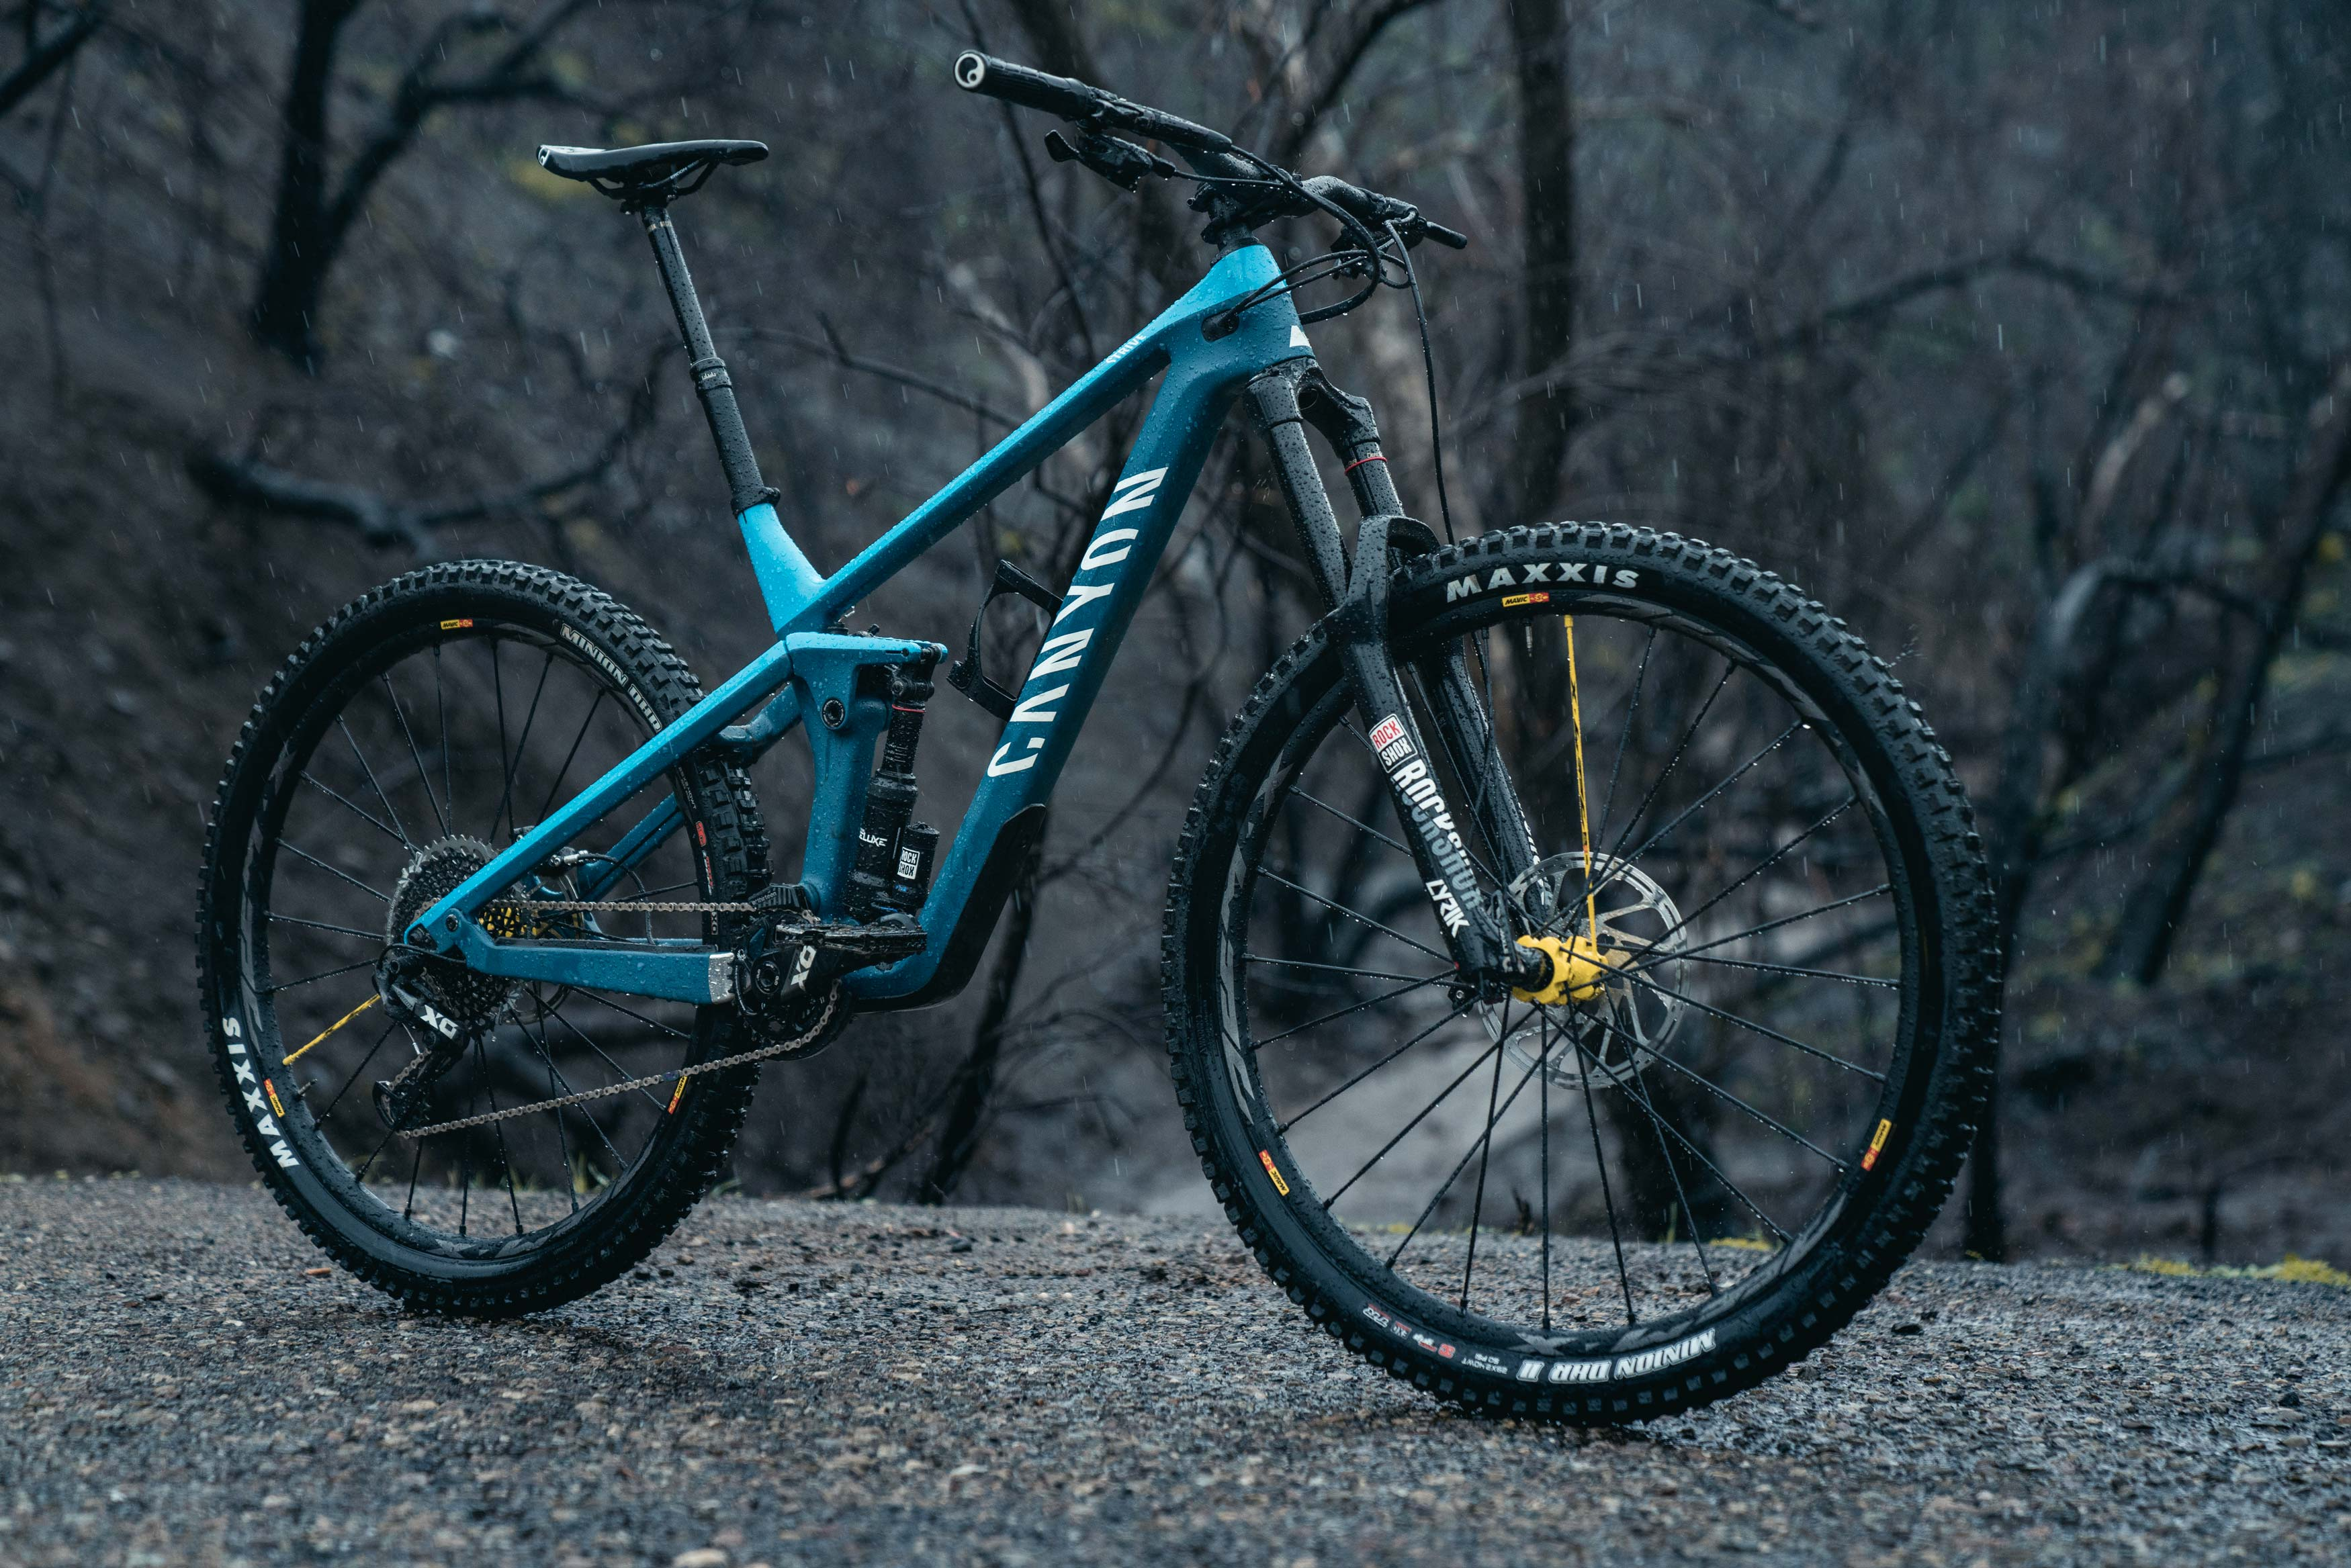 First Ride Review: Canyon Strive, Canyon Goes Long Travel 29er